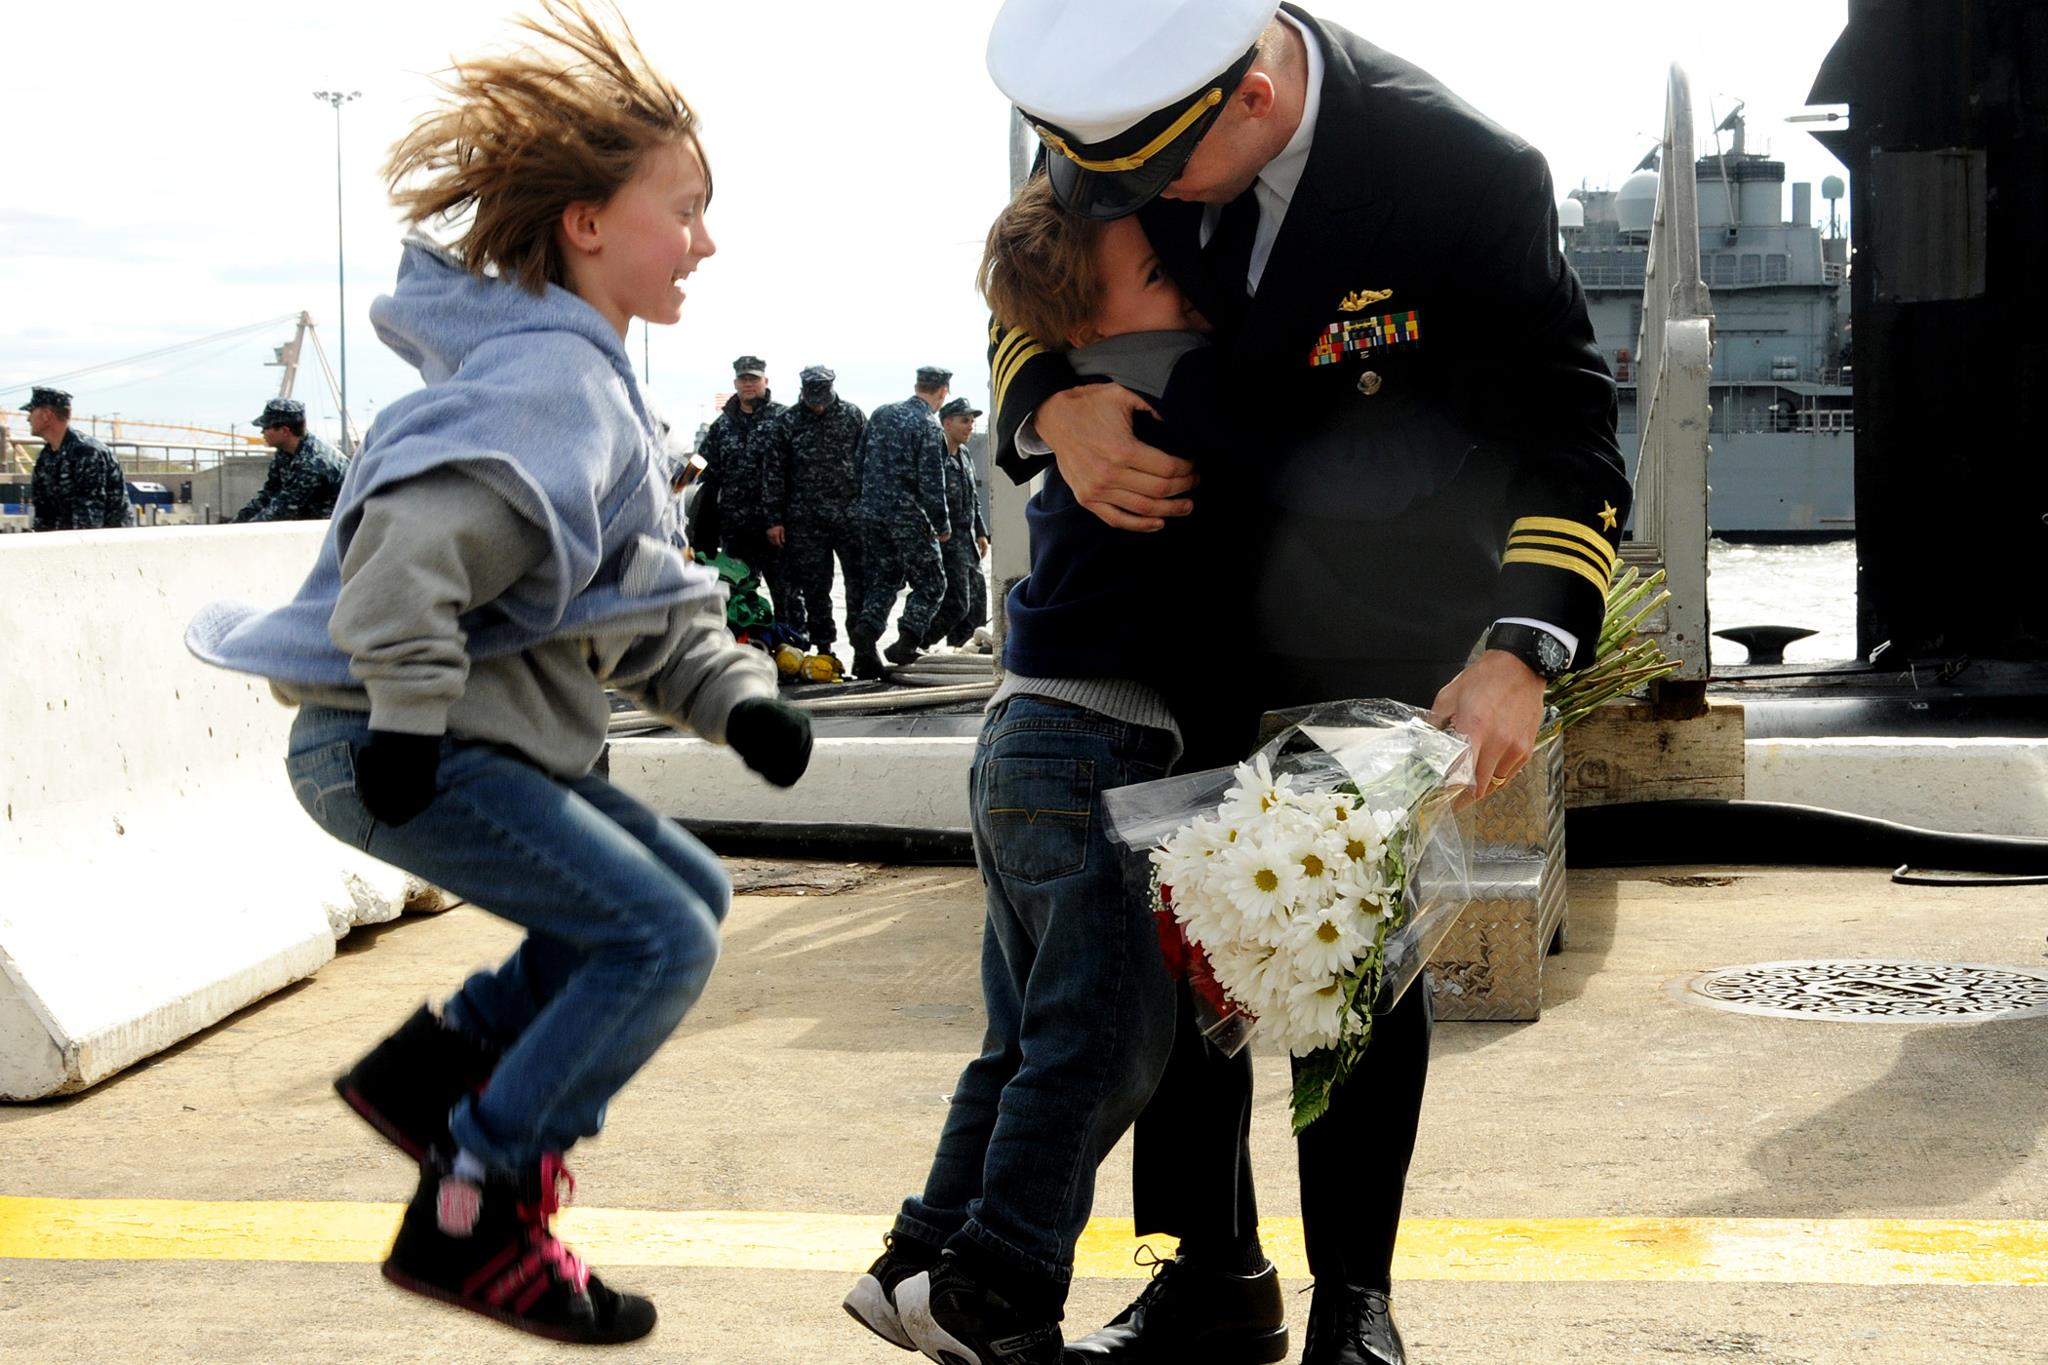 https://www.dodlive.mil/2013/04/12/top-10-reasons-i-admire-military-kids/